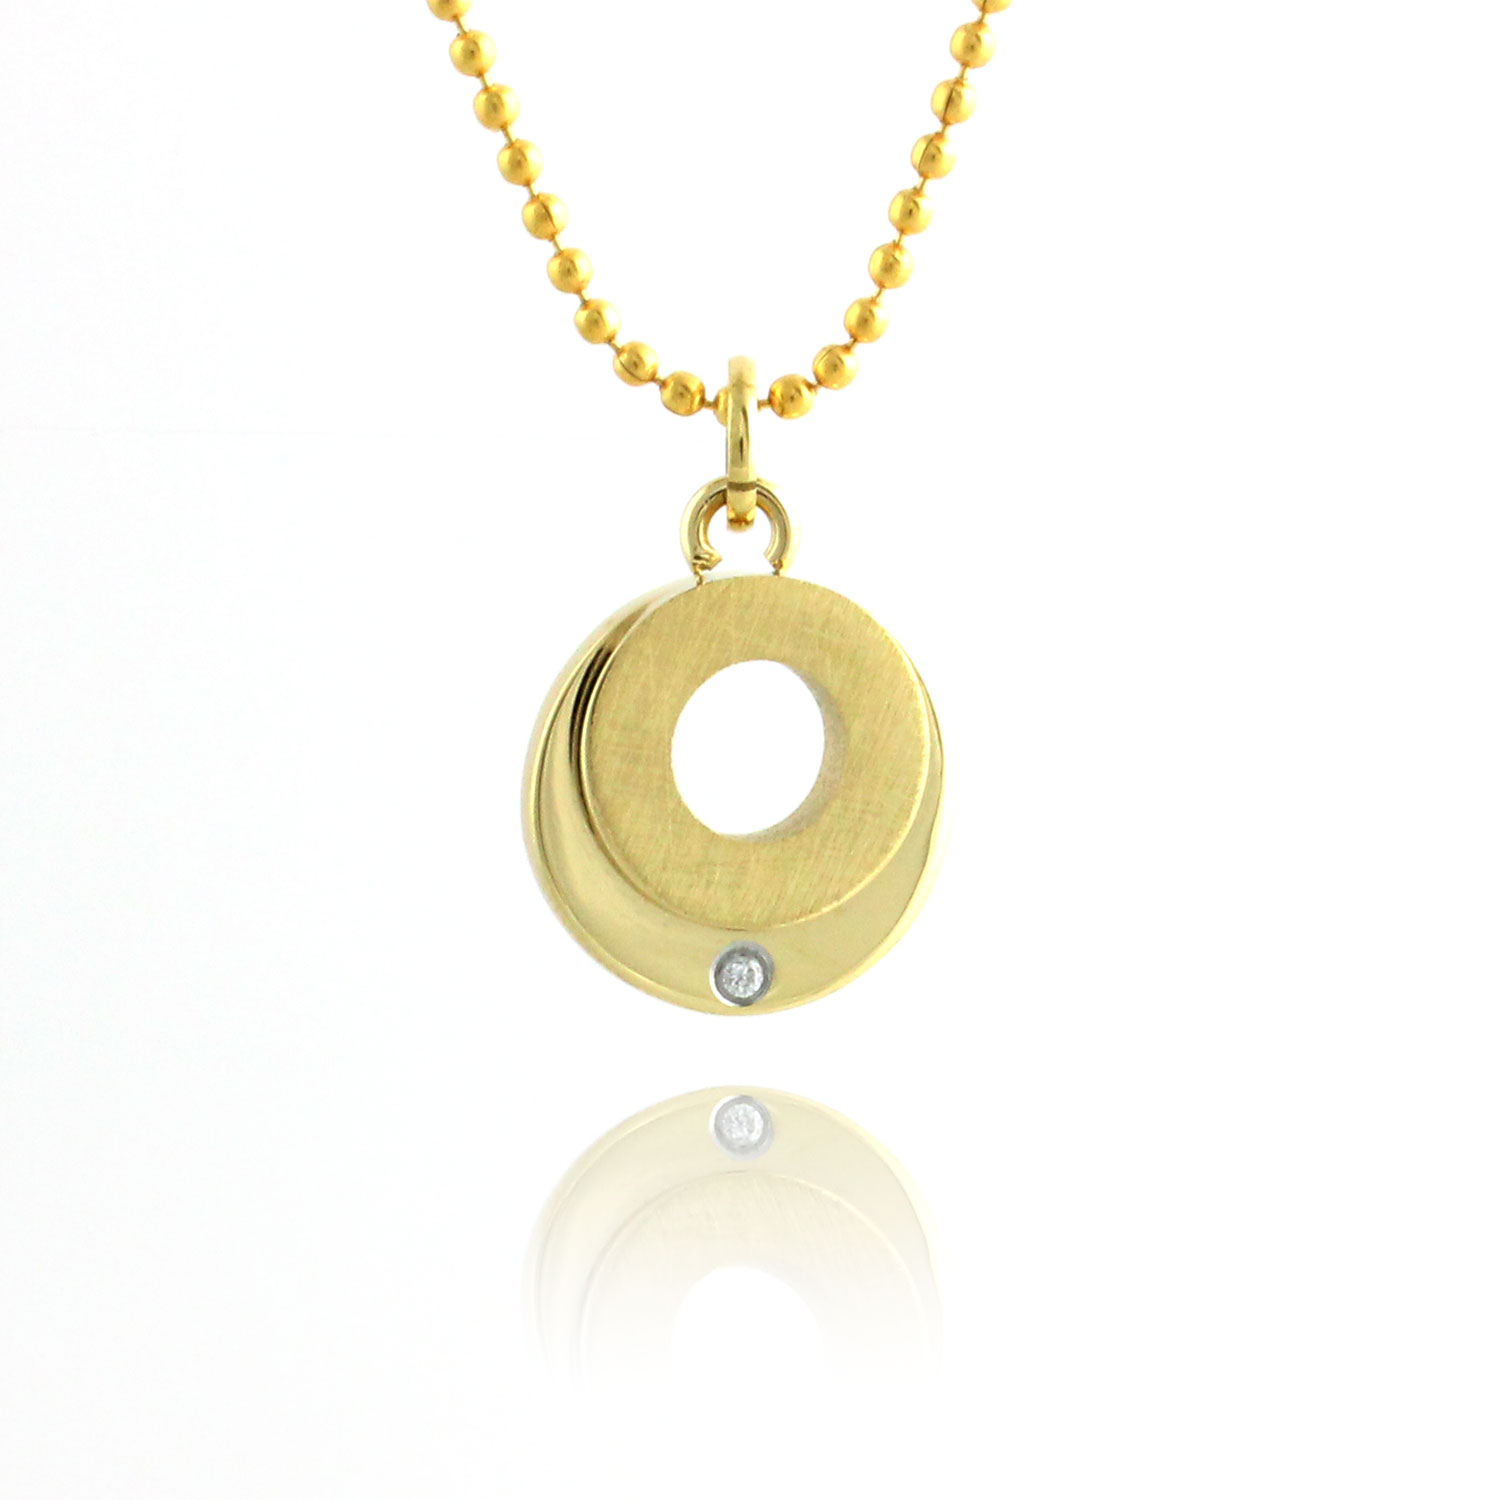 Halo Gold Plated & Cubic Zirconia Circle Pendant Necklace - 18 Inch Chain